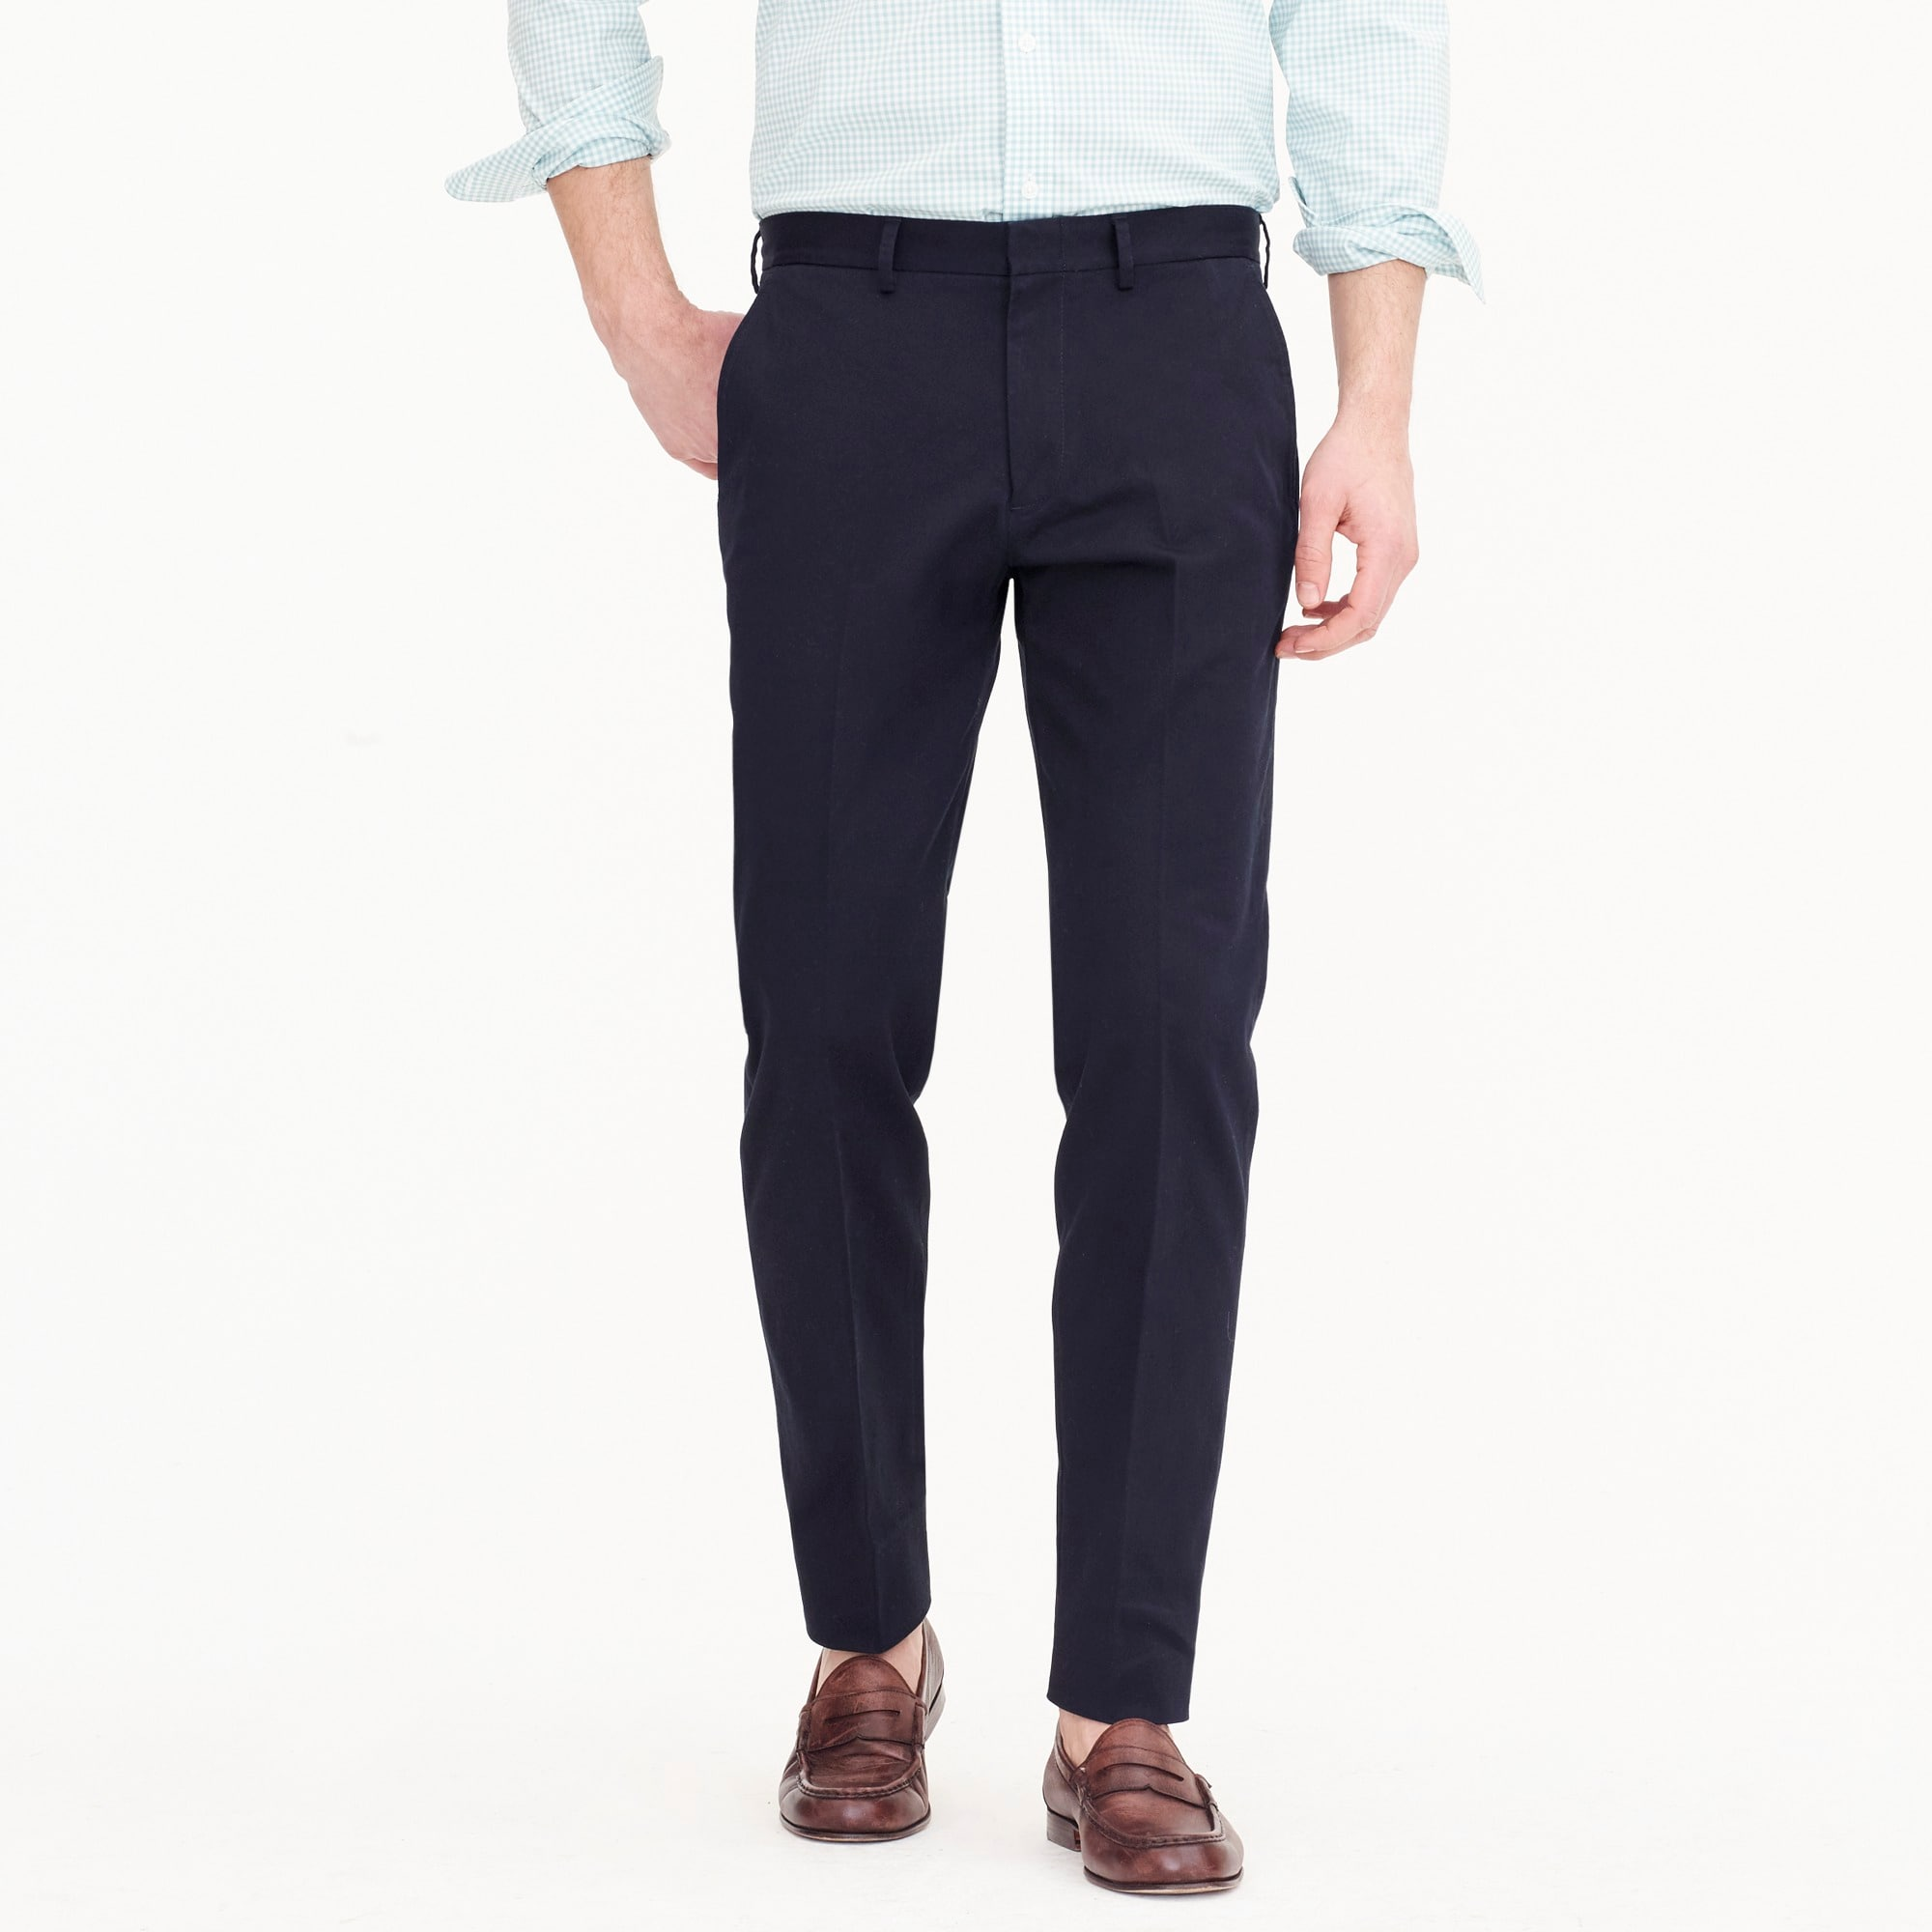 Image 1 for Ludlow Slim-fit pant in stretch chino